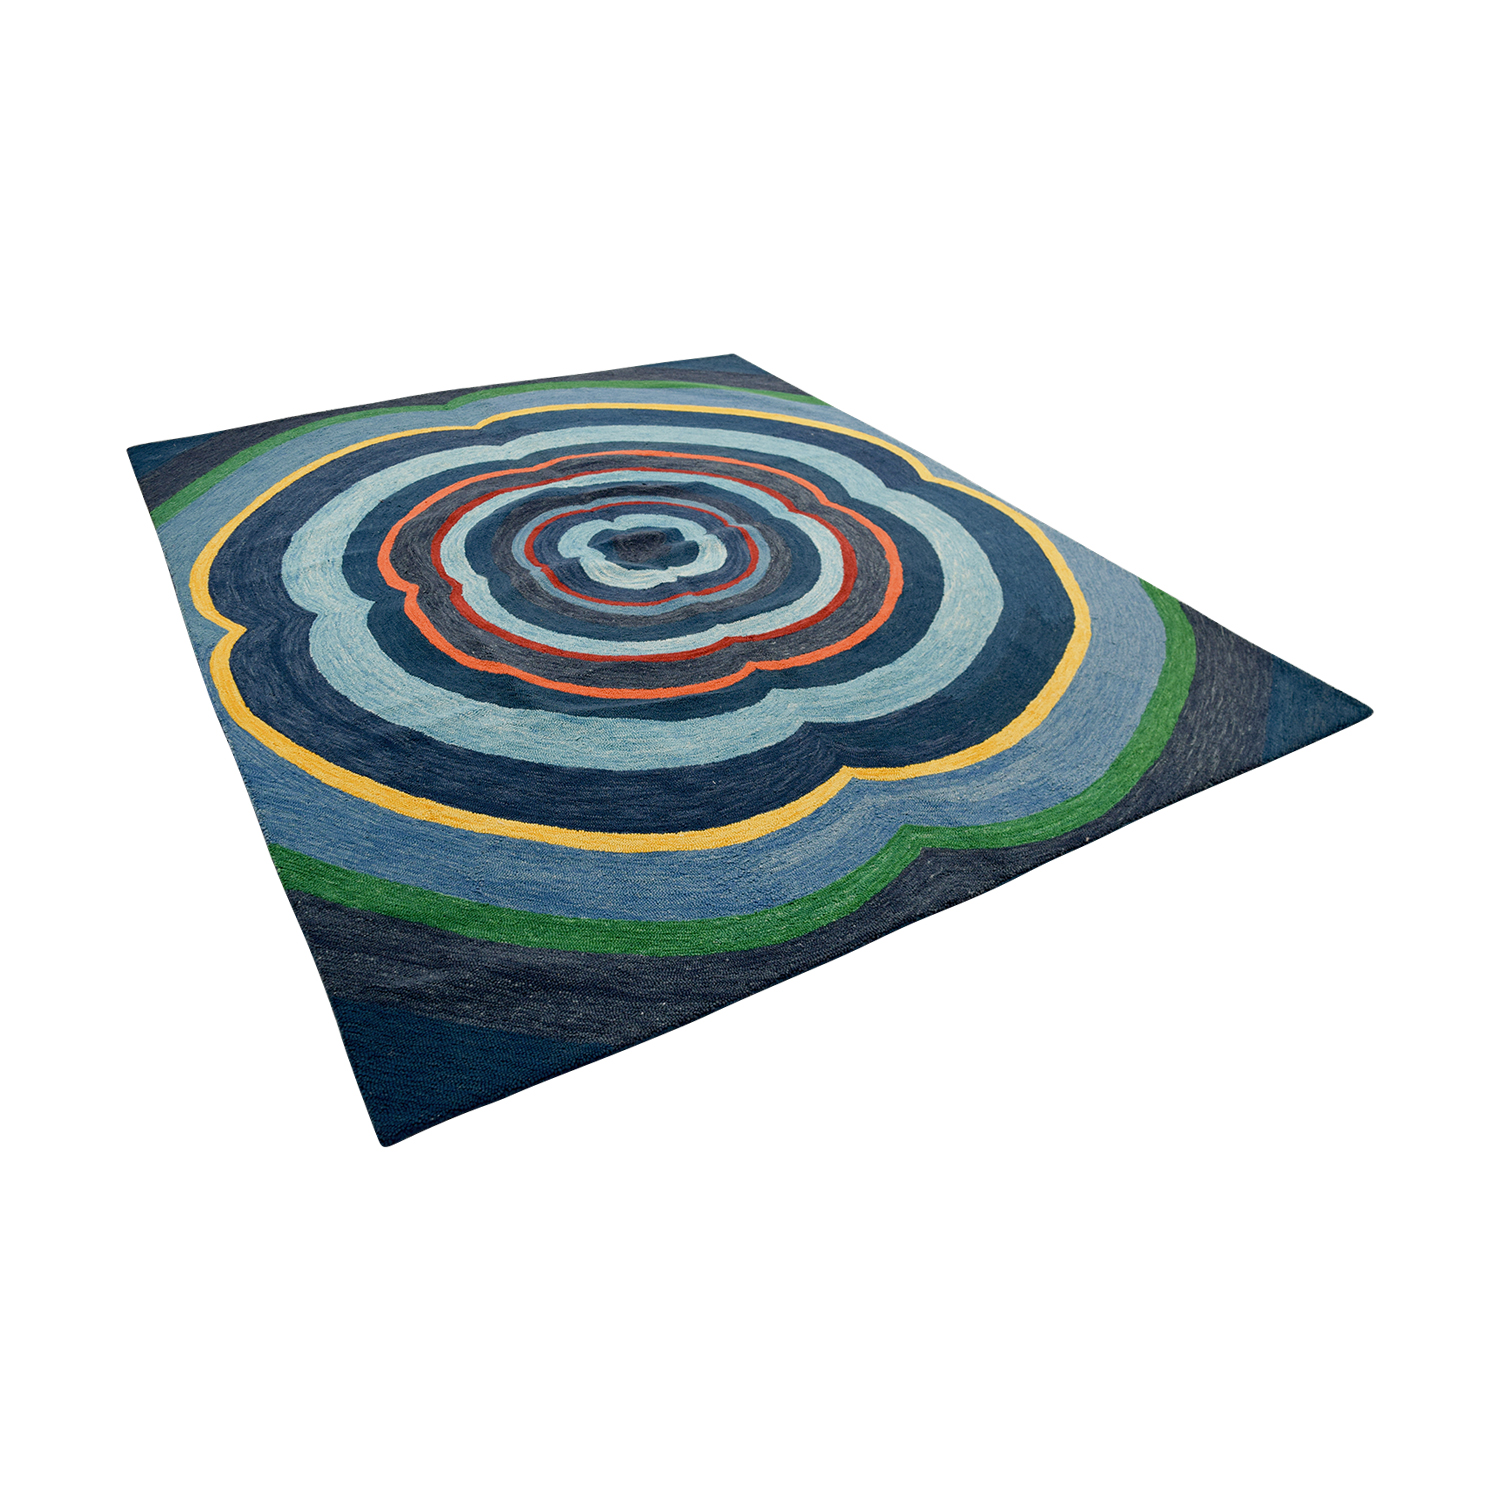 Obeetee Obeetee Annapolis Blue Hand Hooked Rug coupon